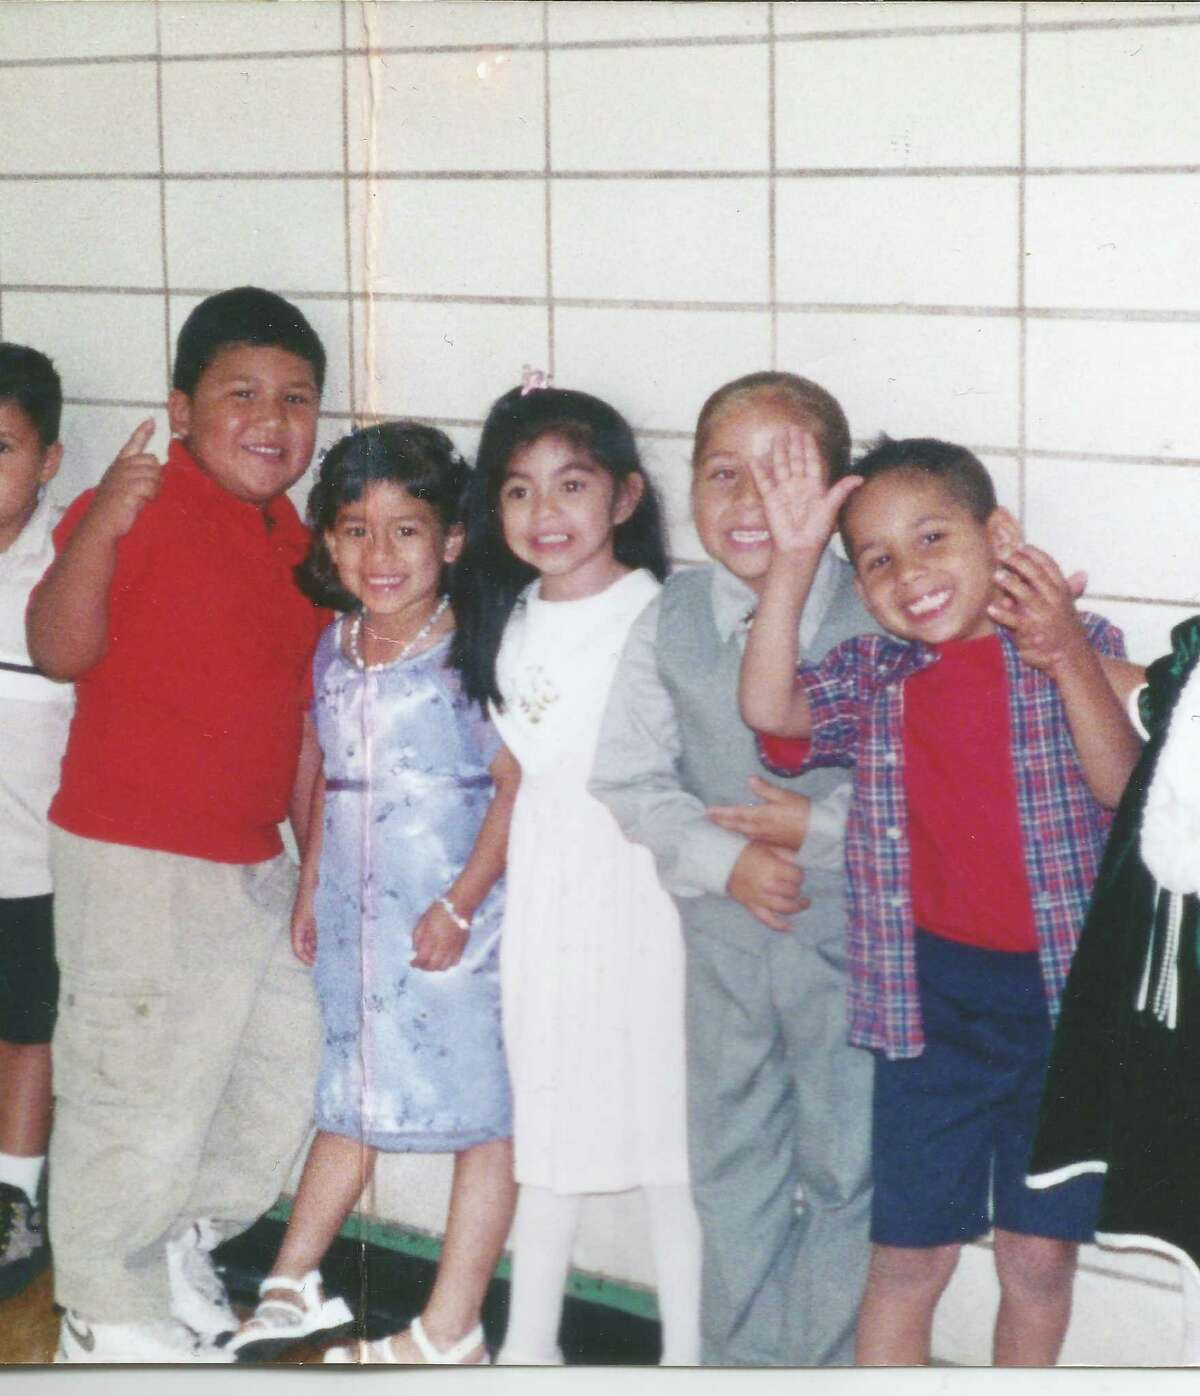 Friends (from left) Jesse Martinez, Alexis Ibarra, Marissa Hernandez, Isiah Garcia and Jordan Fernandez pose in the Kennedy High School gym back in 2000 when they were all 4 years old.